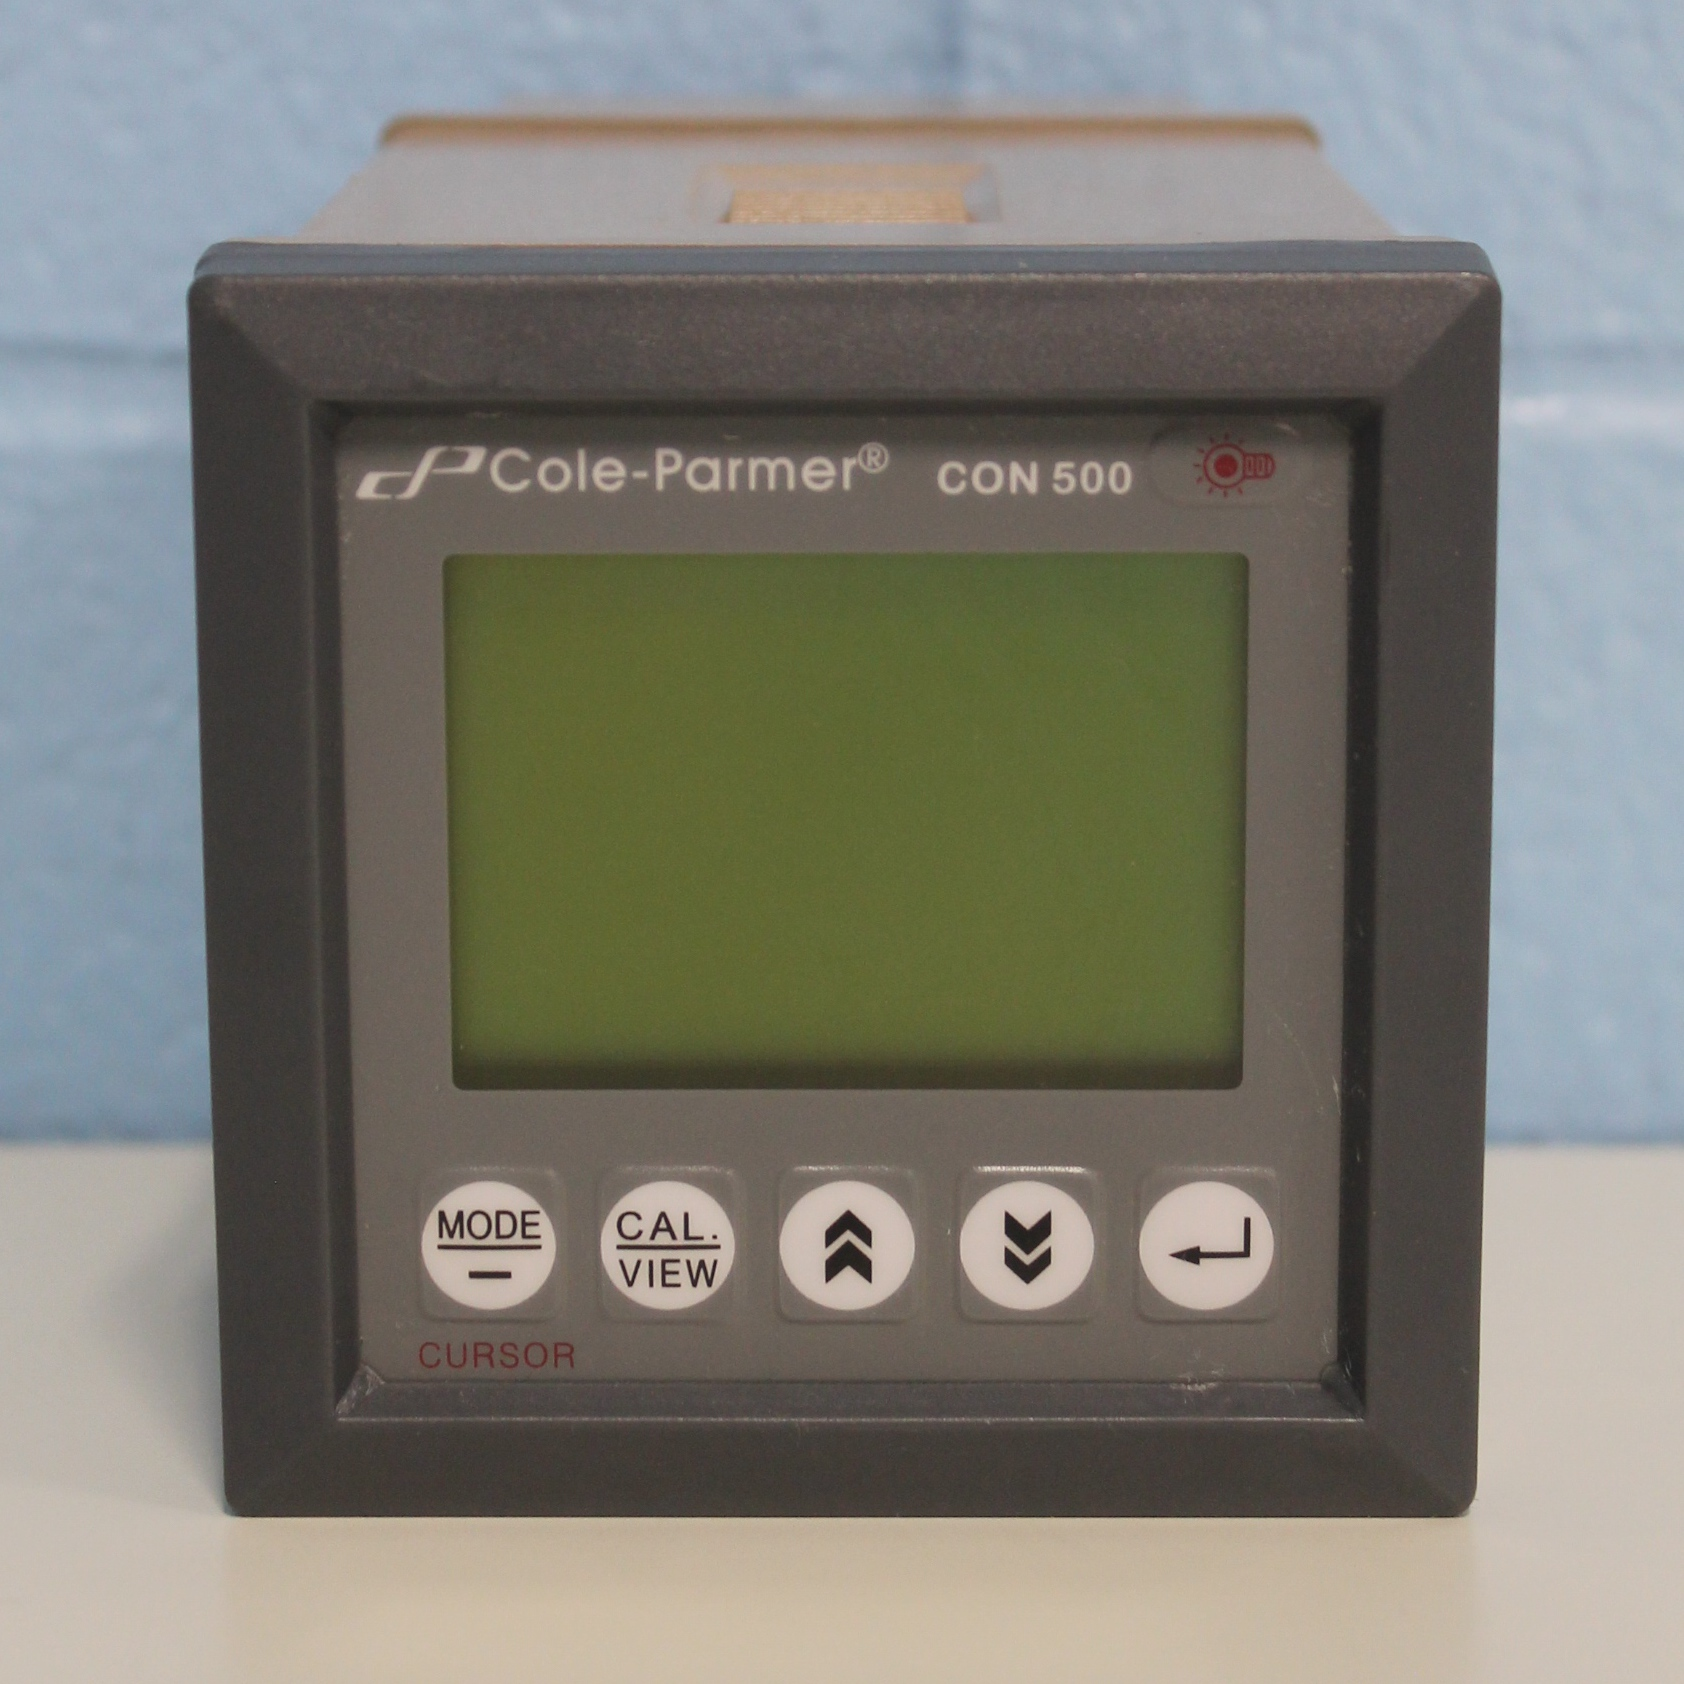 Cole-Parmer CON 500 Conductivity and Temperature Meter Image